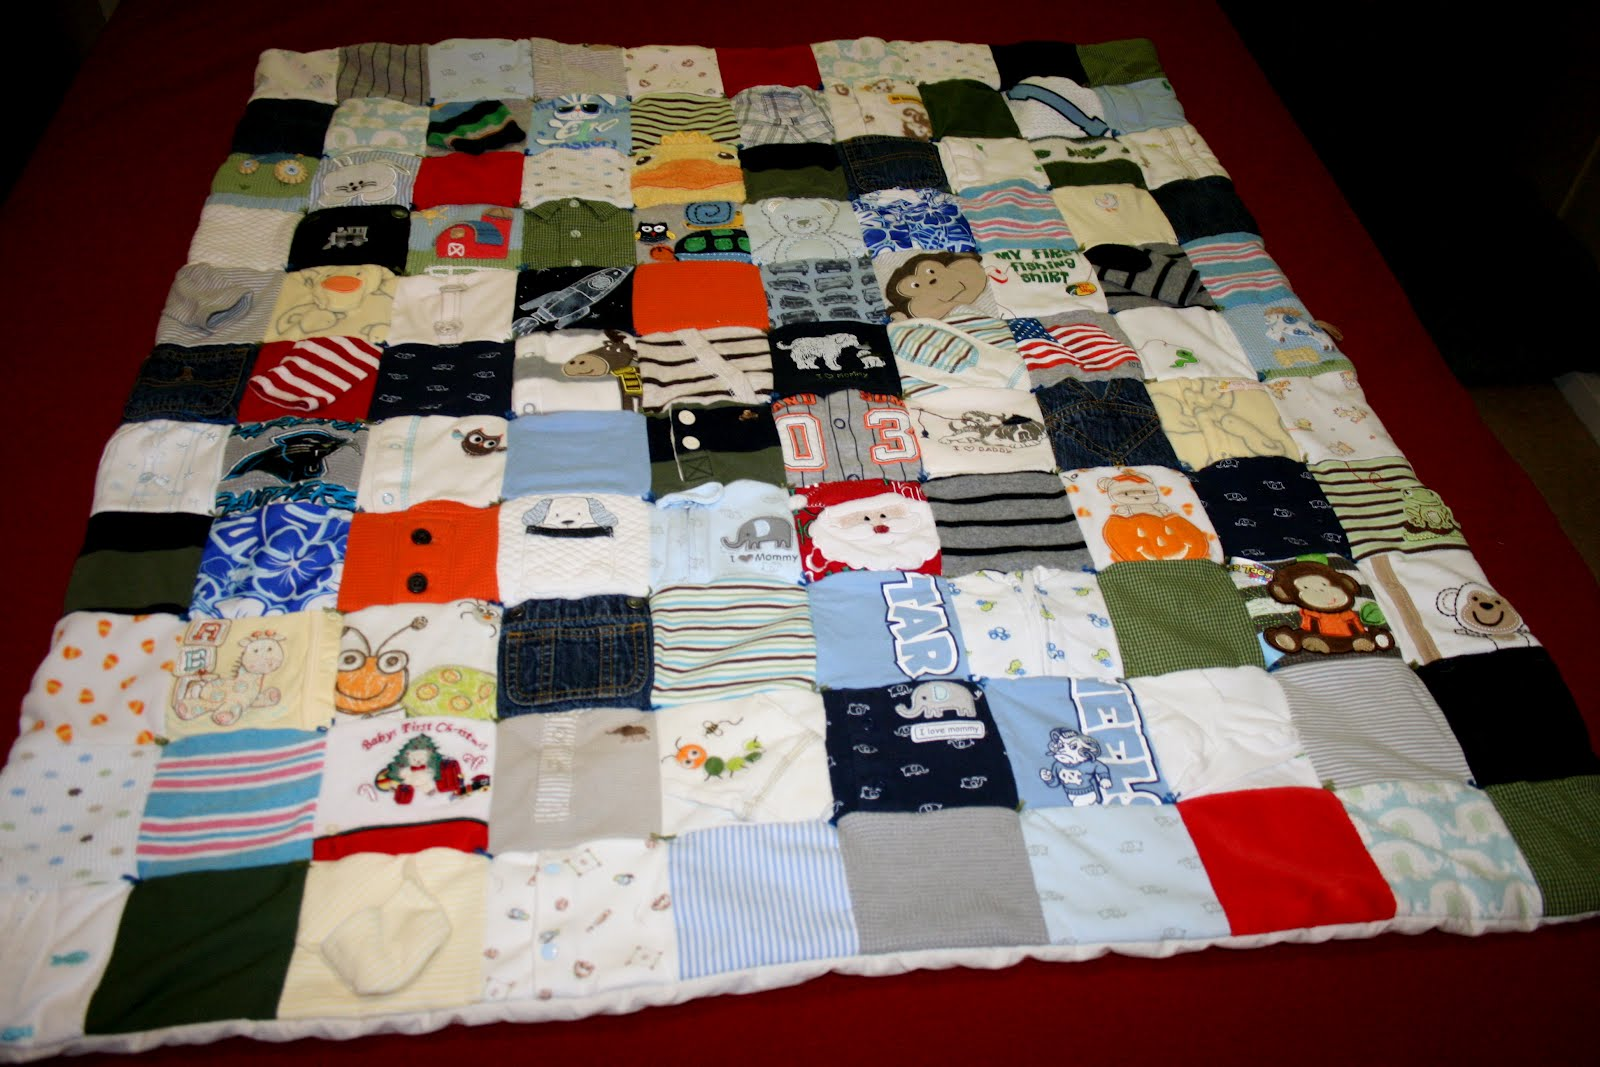 What is the significance of the quilts in